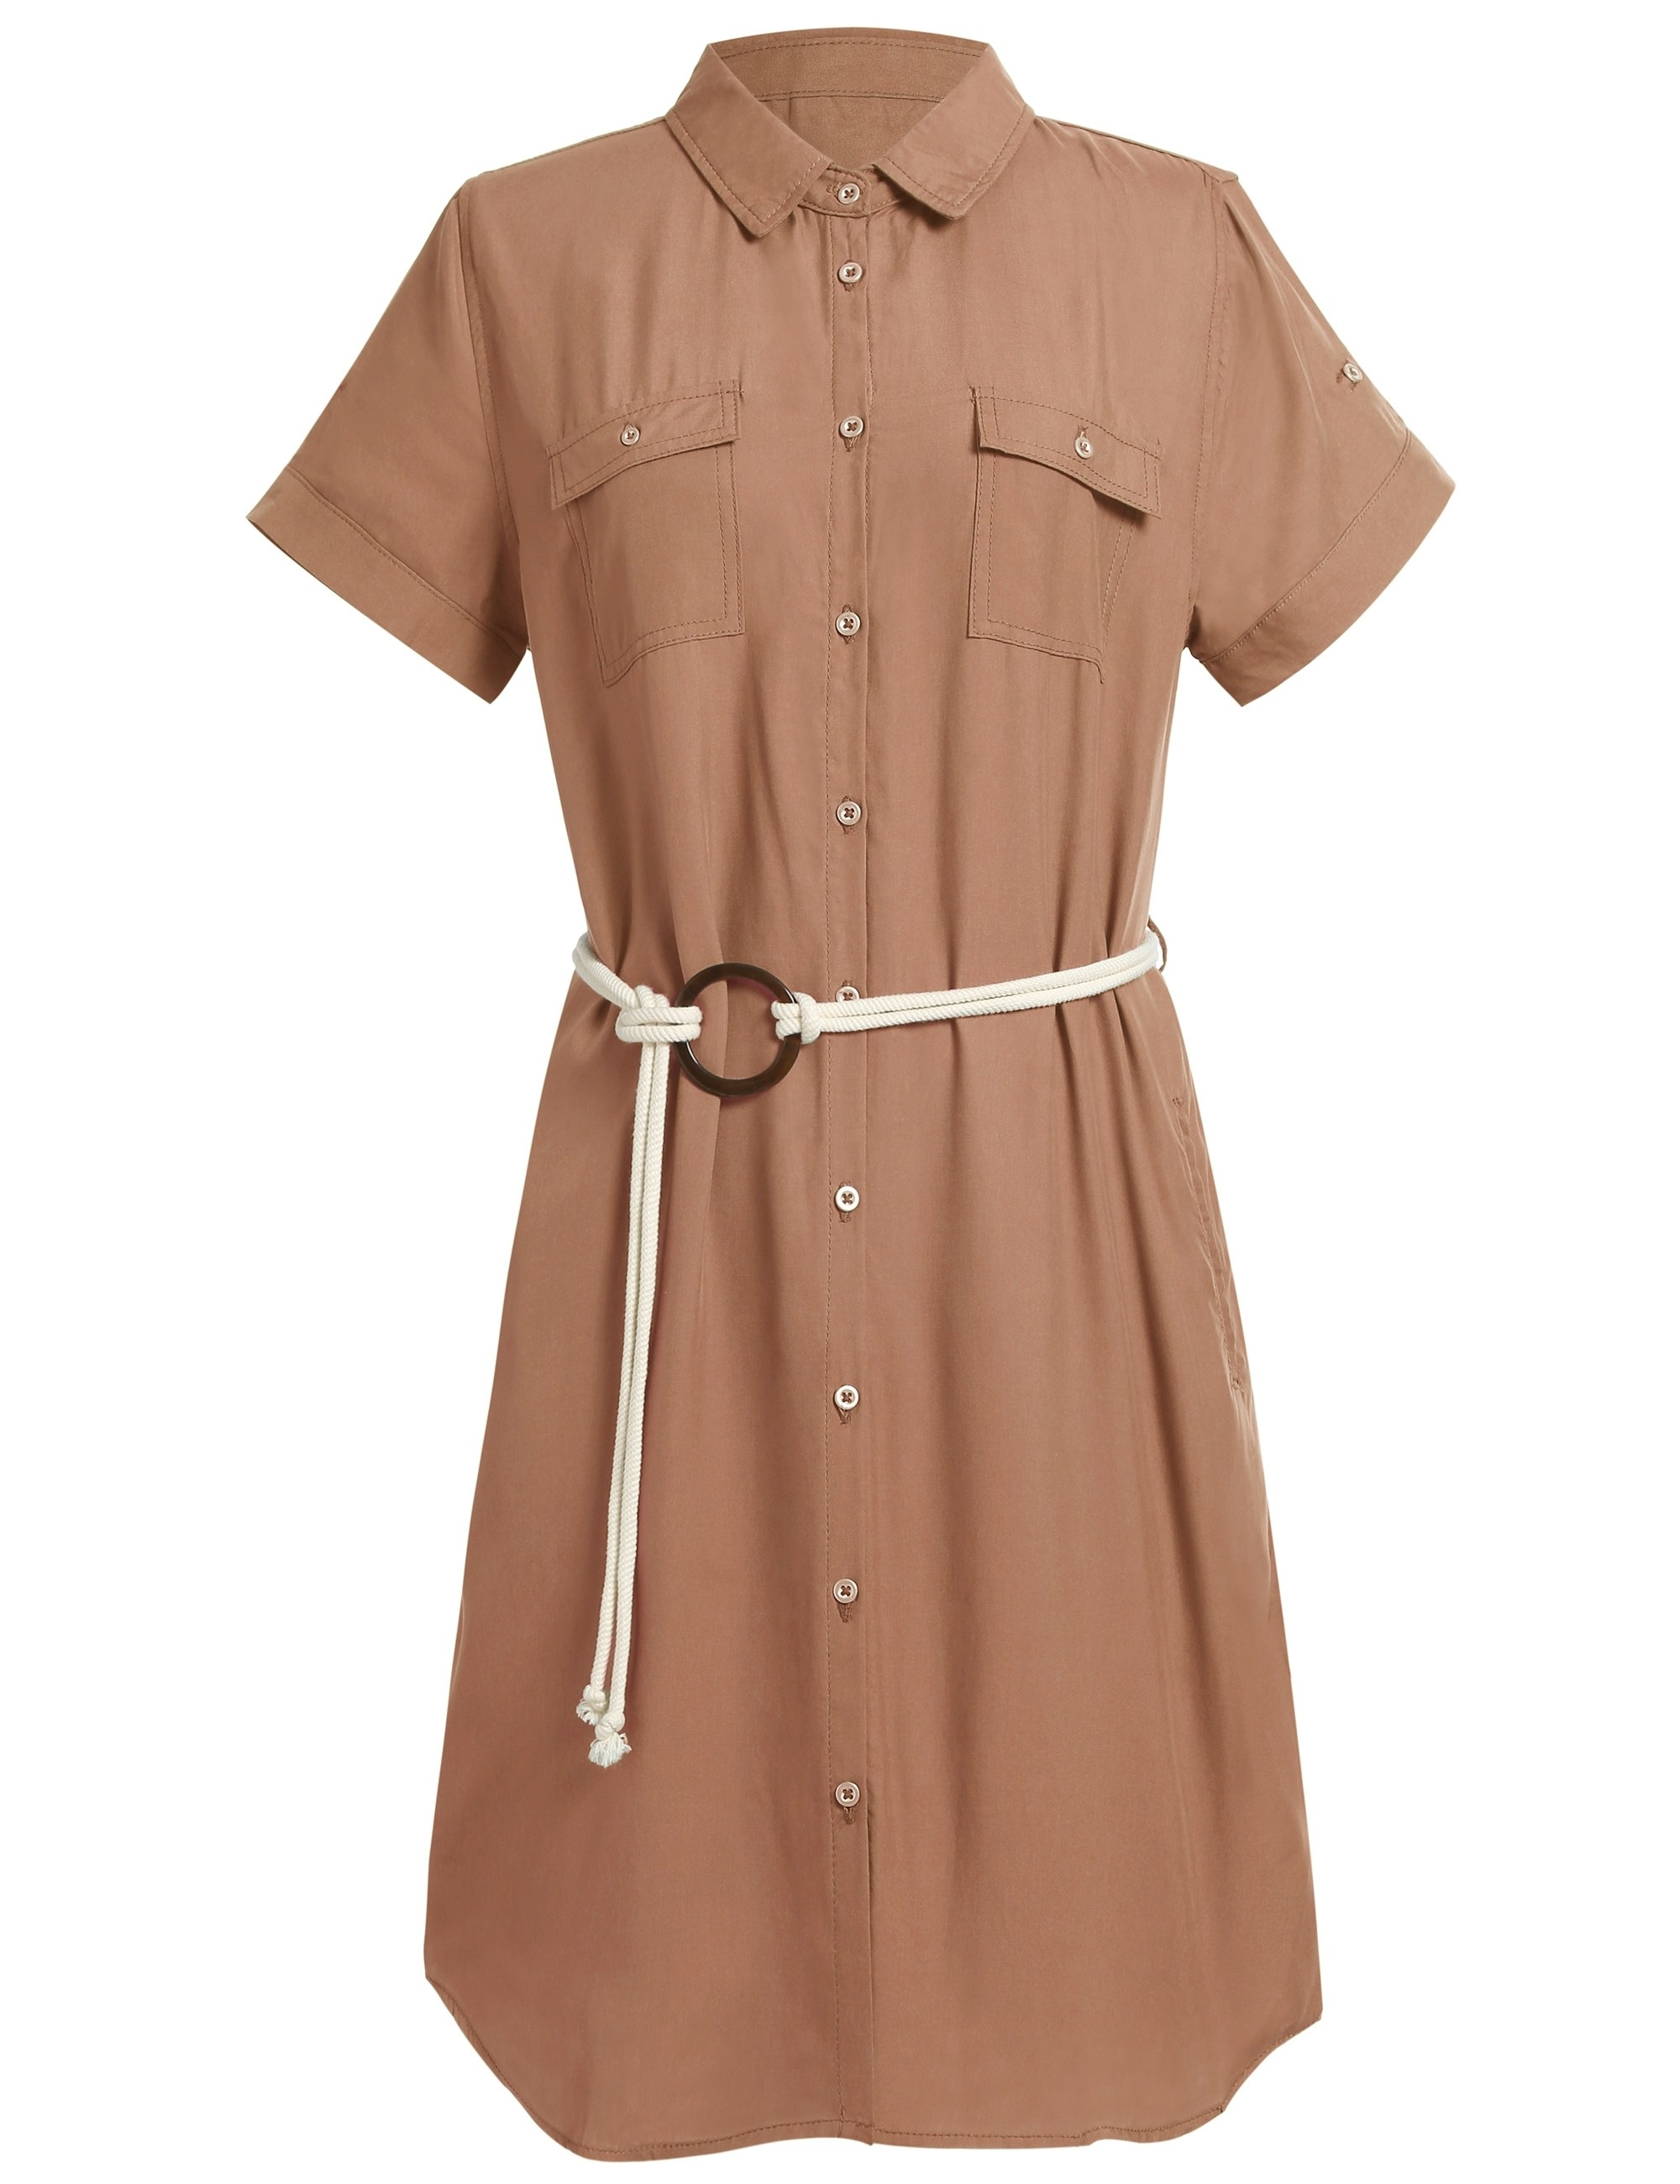 A beige belted button up short-sleeved midi dress